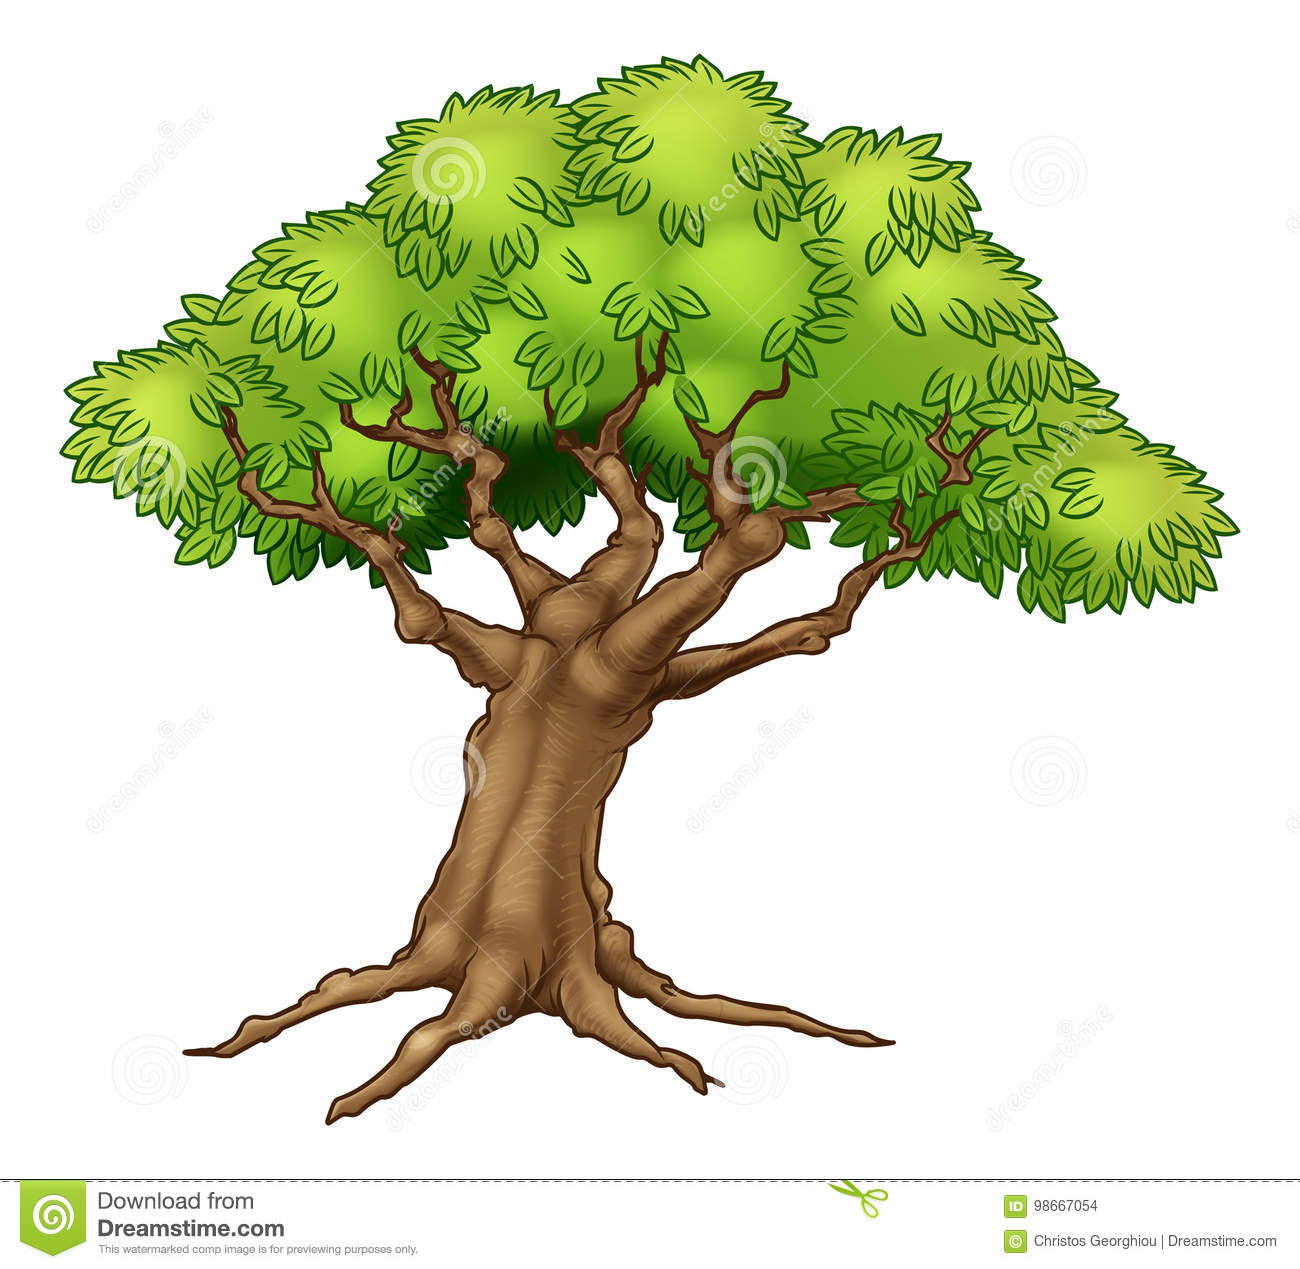 Cartoon Tree Stock Vector Illustration Of Magical Leaves 98667054 Find gifs with the latest and newest hashtags! https www dreamstime com stock illustration cartoon tree illustration drawing roots image98667054